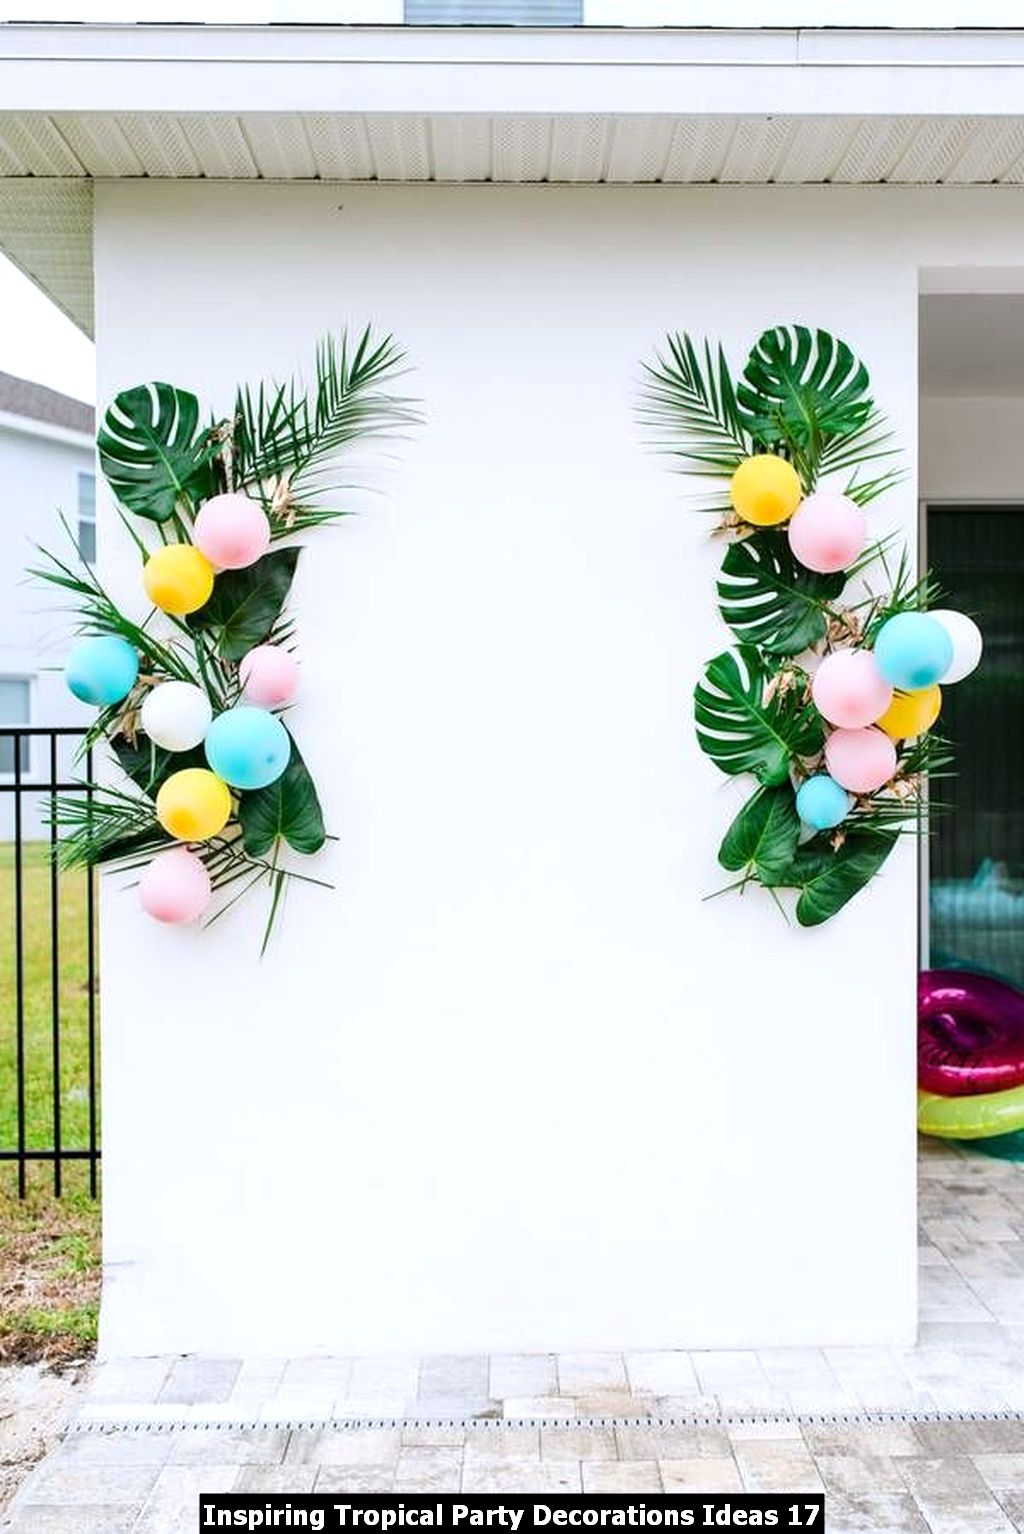 Inspiring Tropical Party Decorations Ideas 17